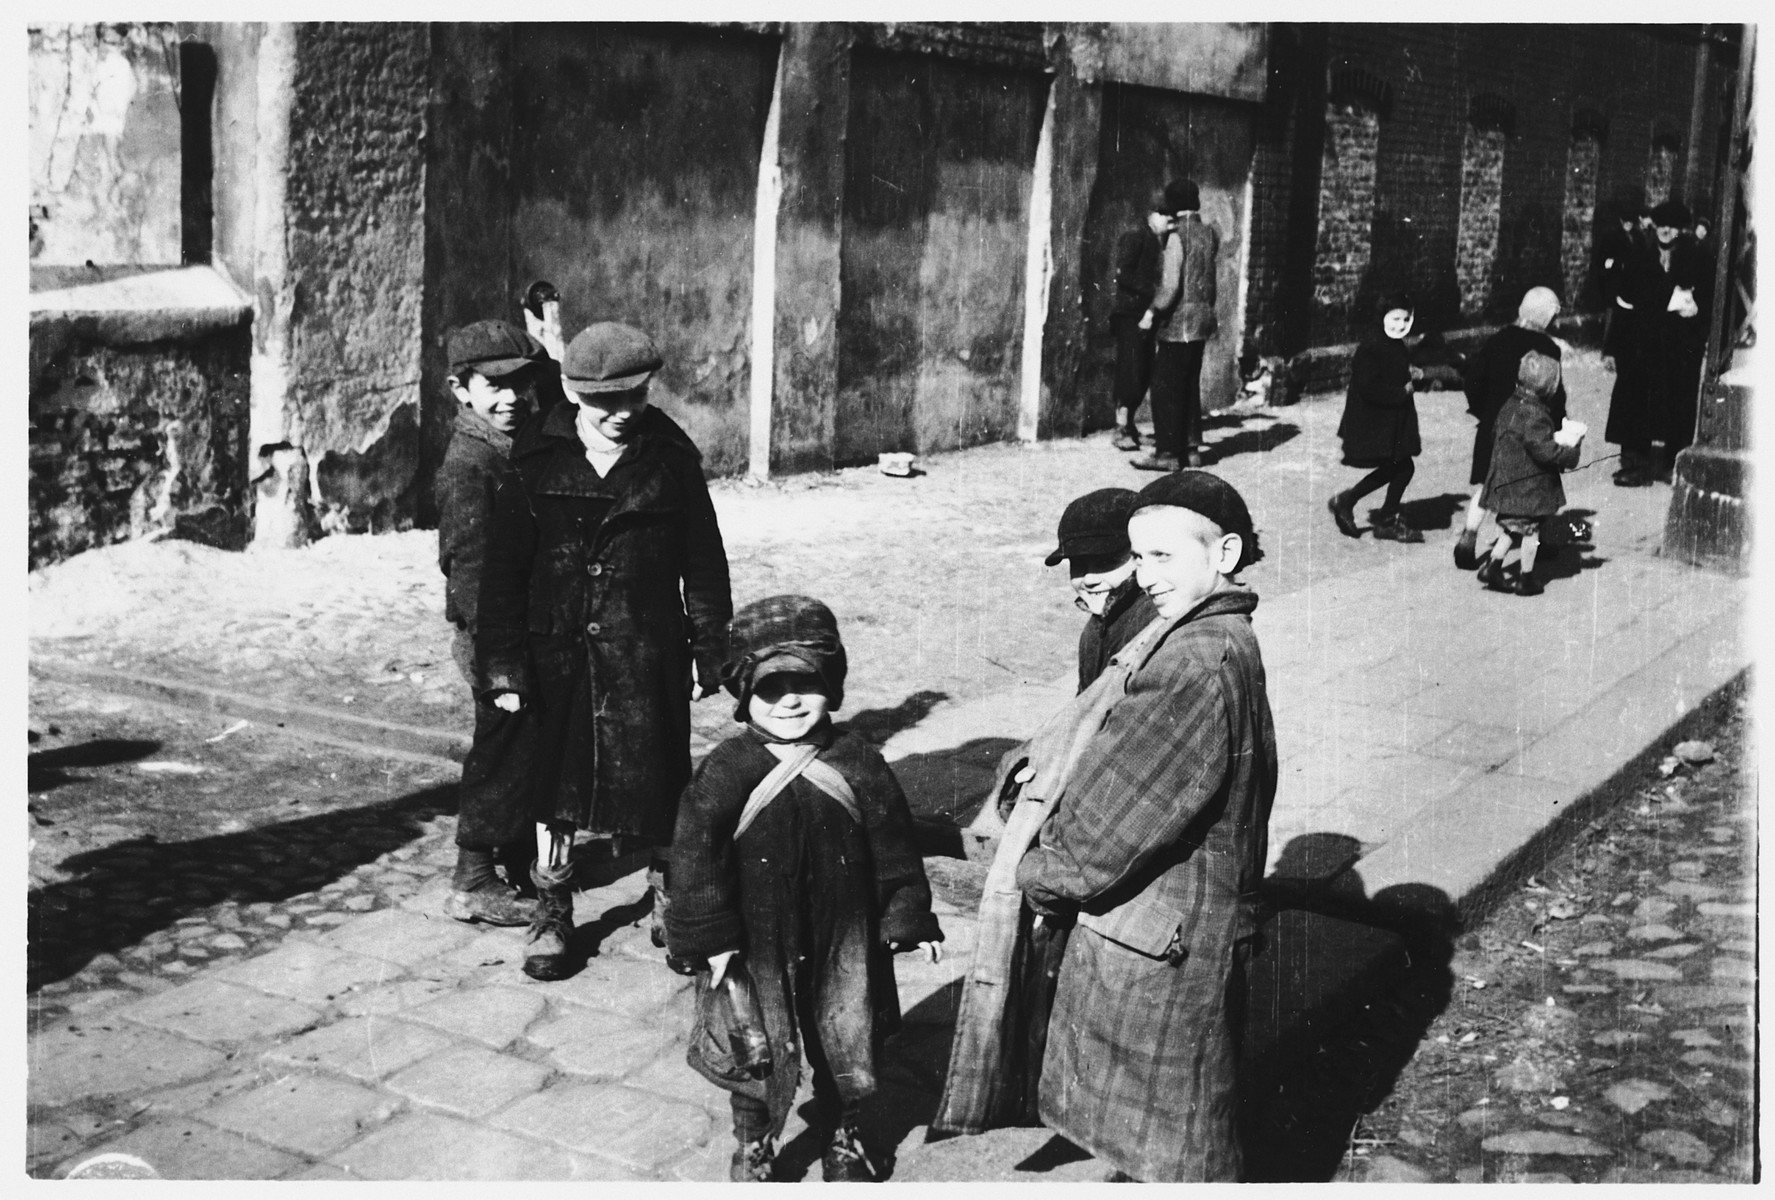 A group of children are gathered on a street corner in the Warsaw ghetto.